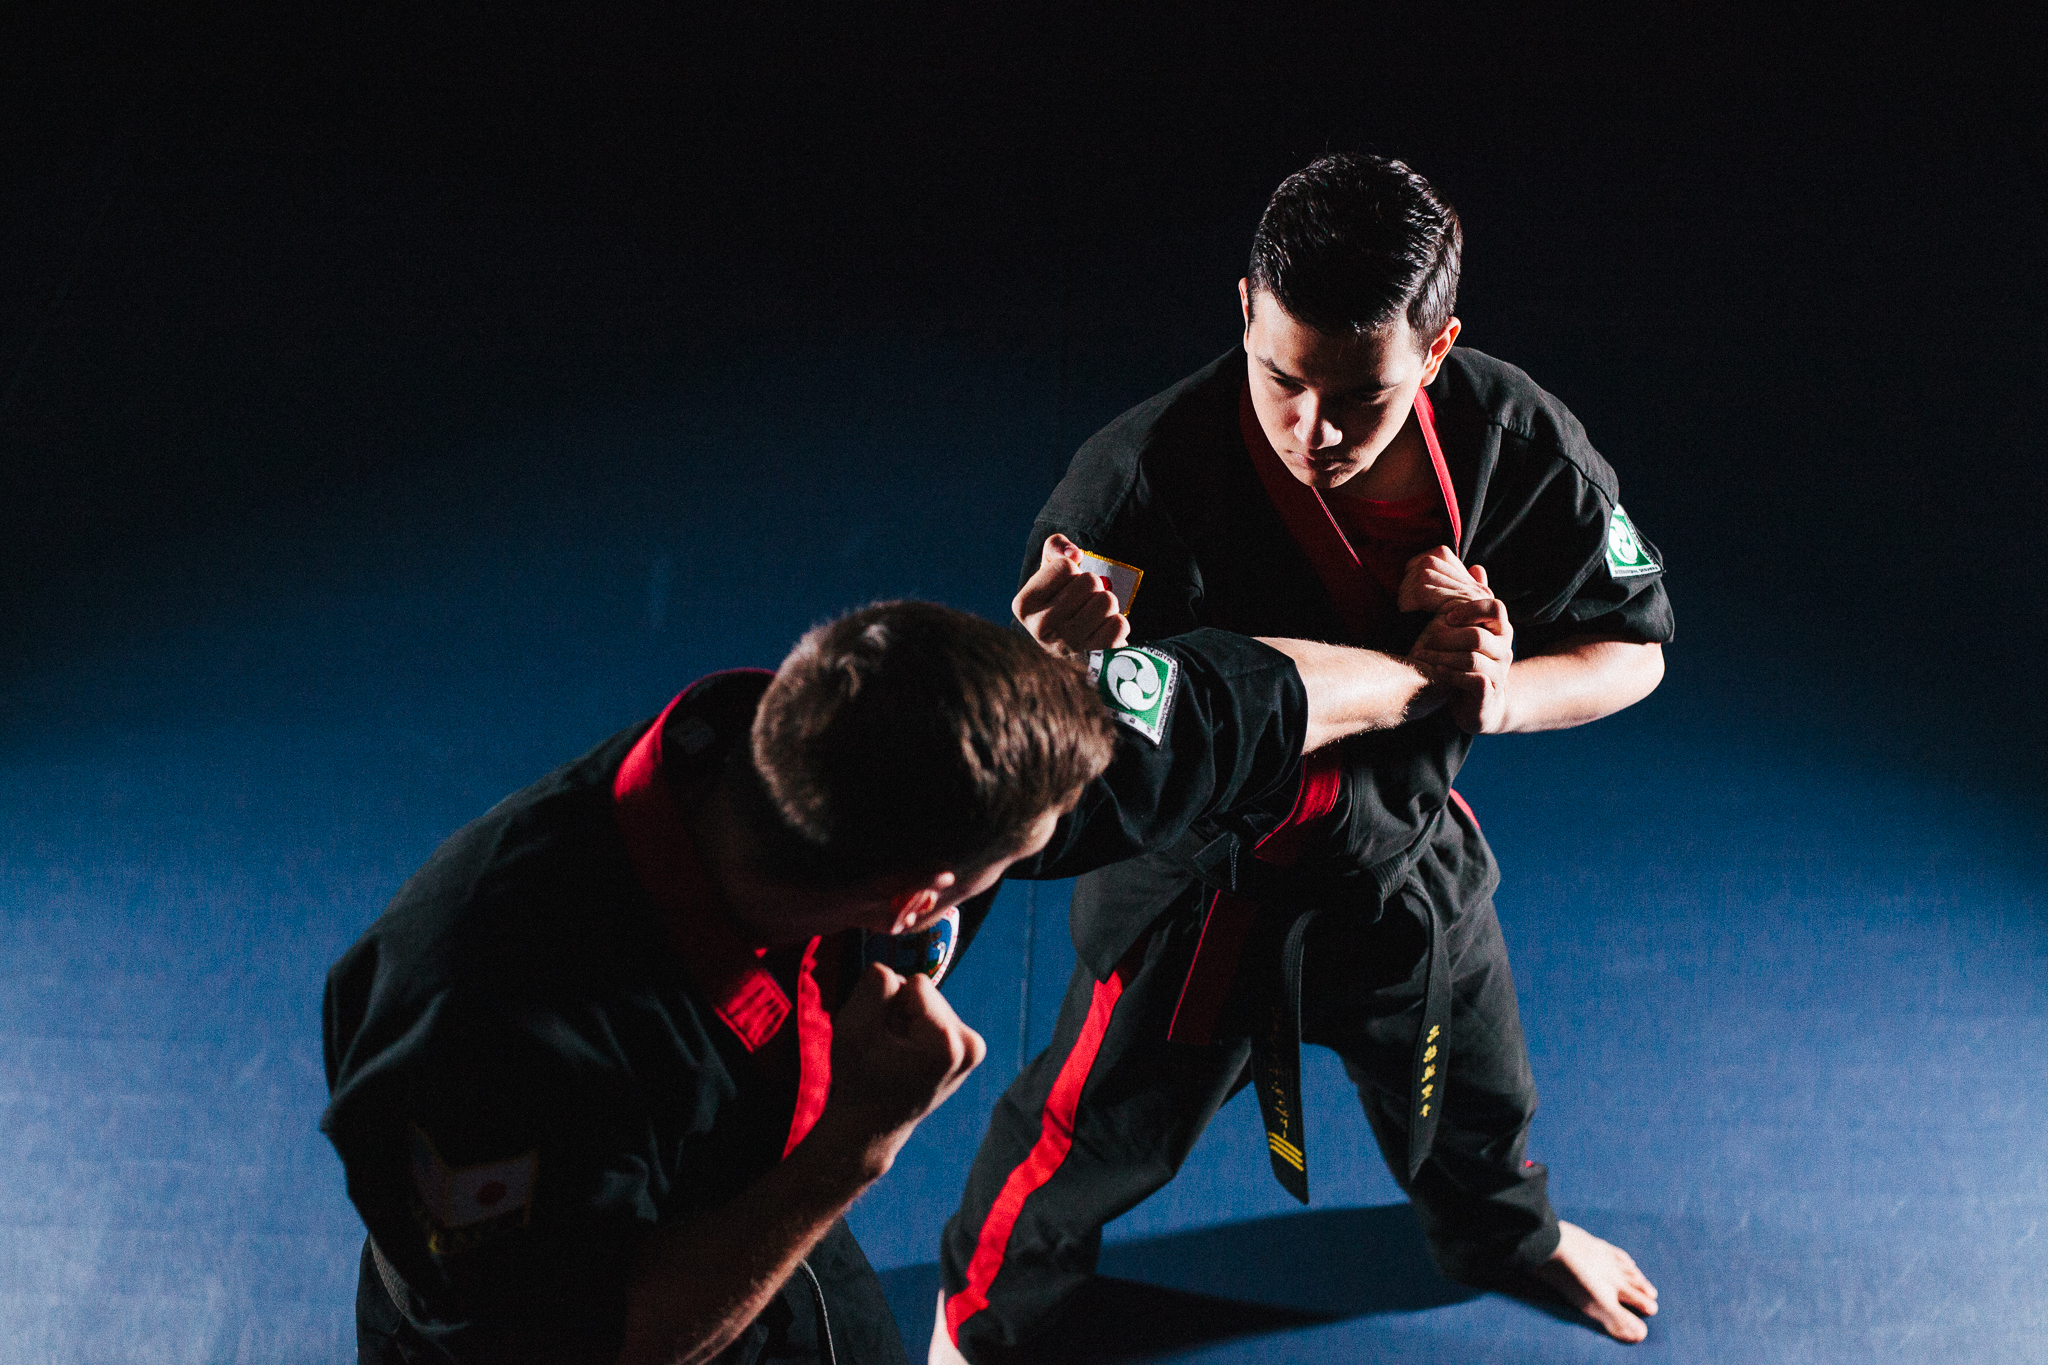 Teen Krav Maga Promotion - Monday, September 23rd @ 6:30-7:30 pmTuesday, September 24th @ 5:00-6:00pm